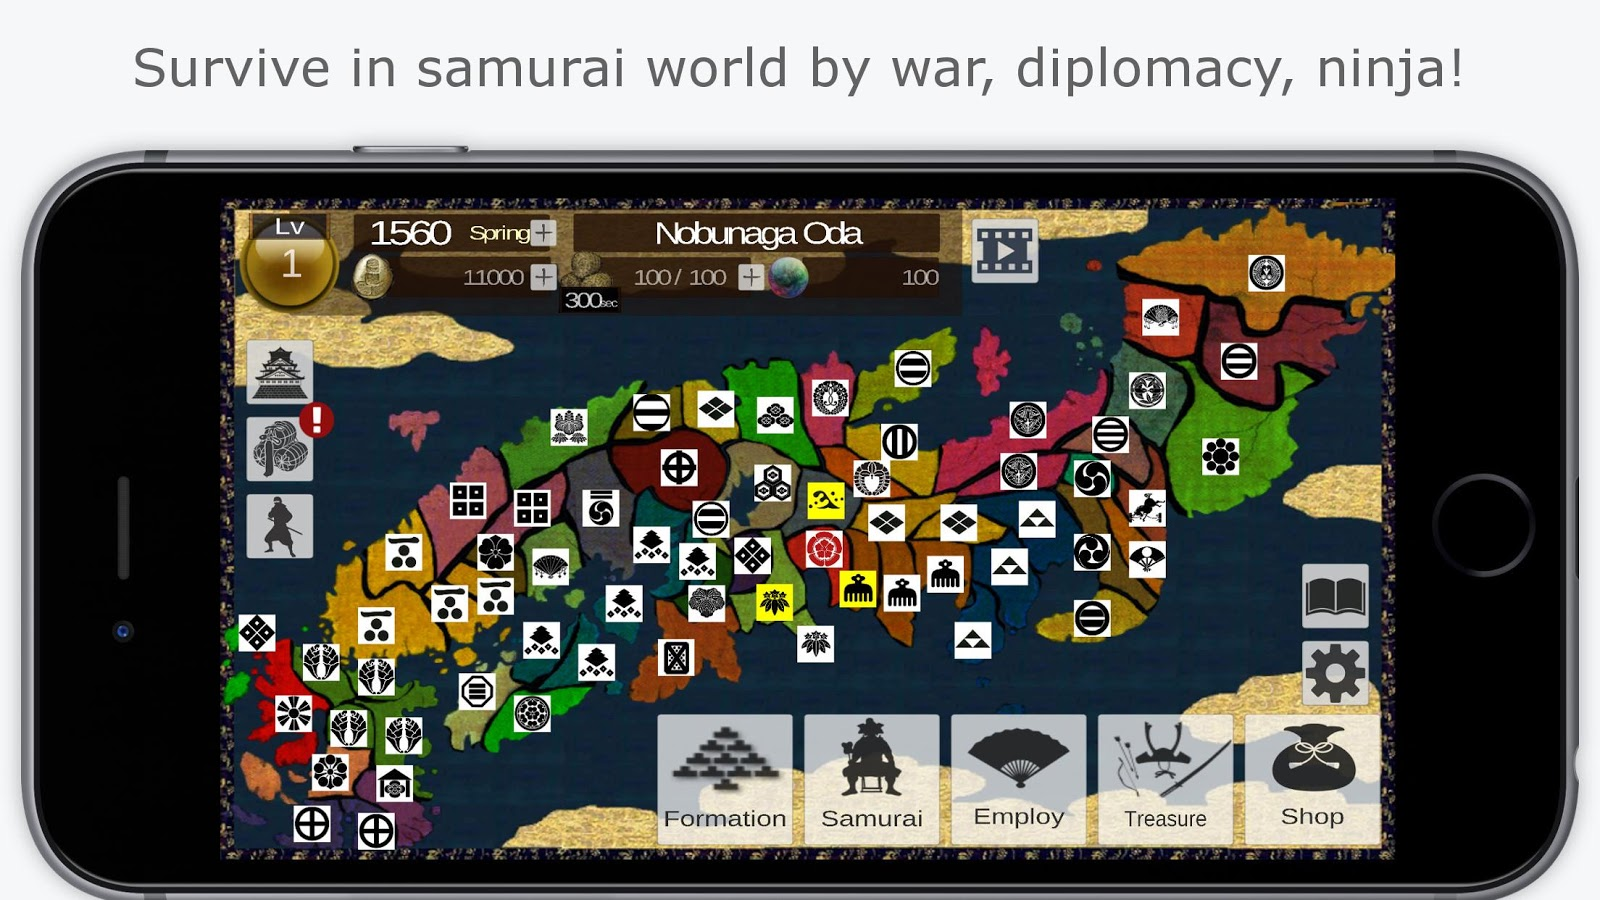 The Samurai Wars Screenshot 1